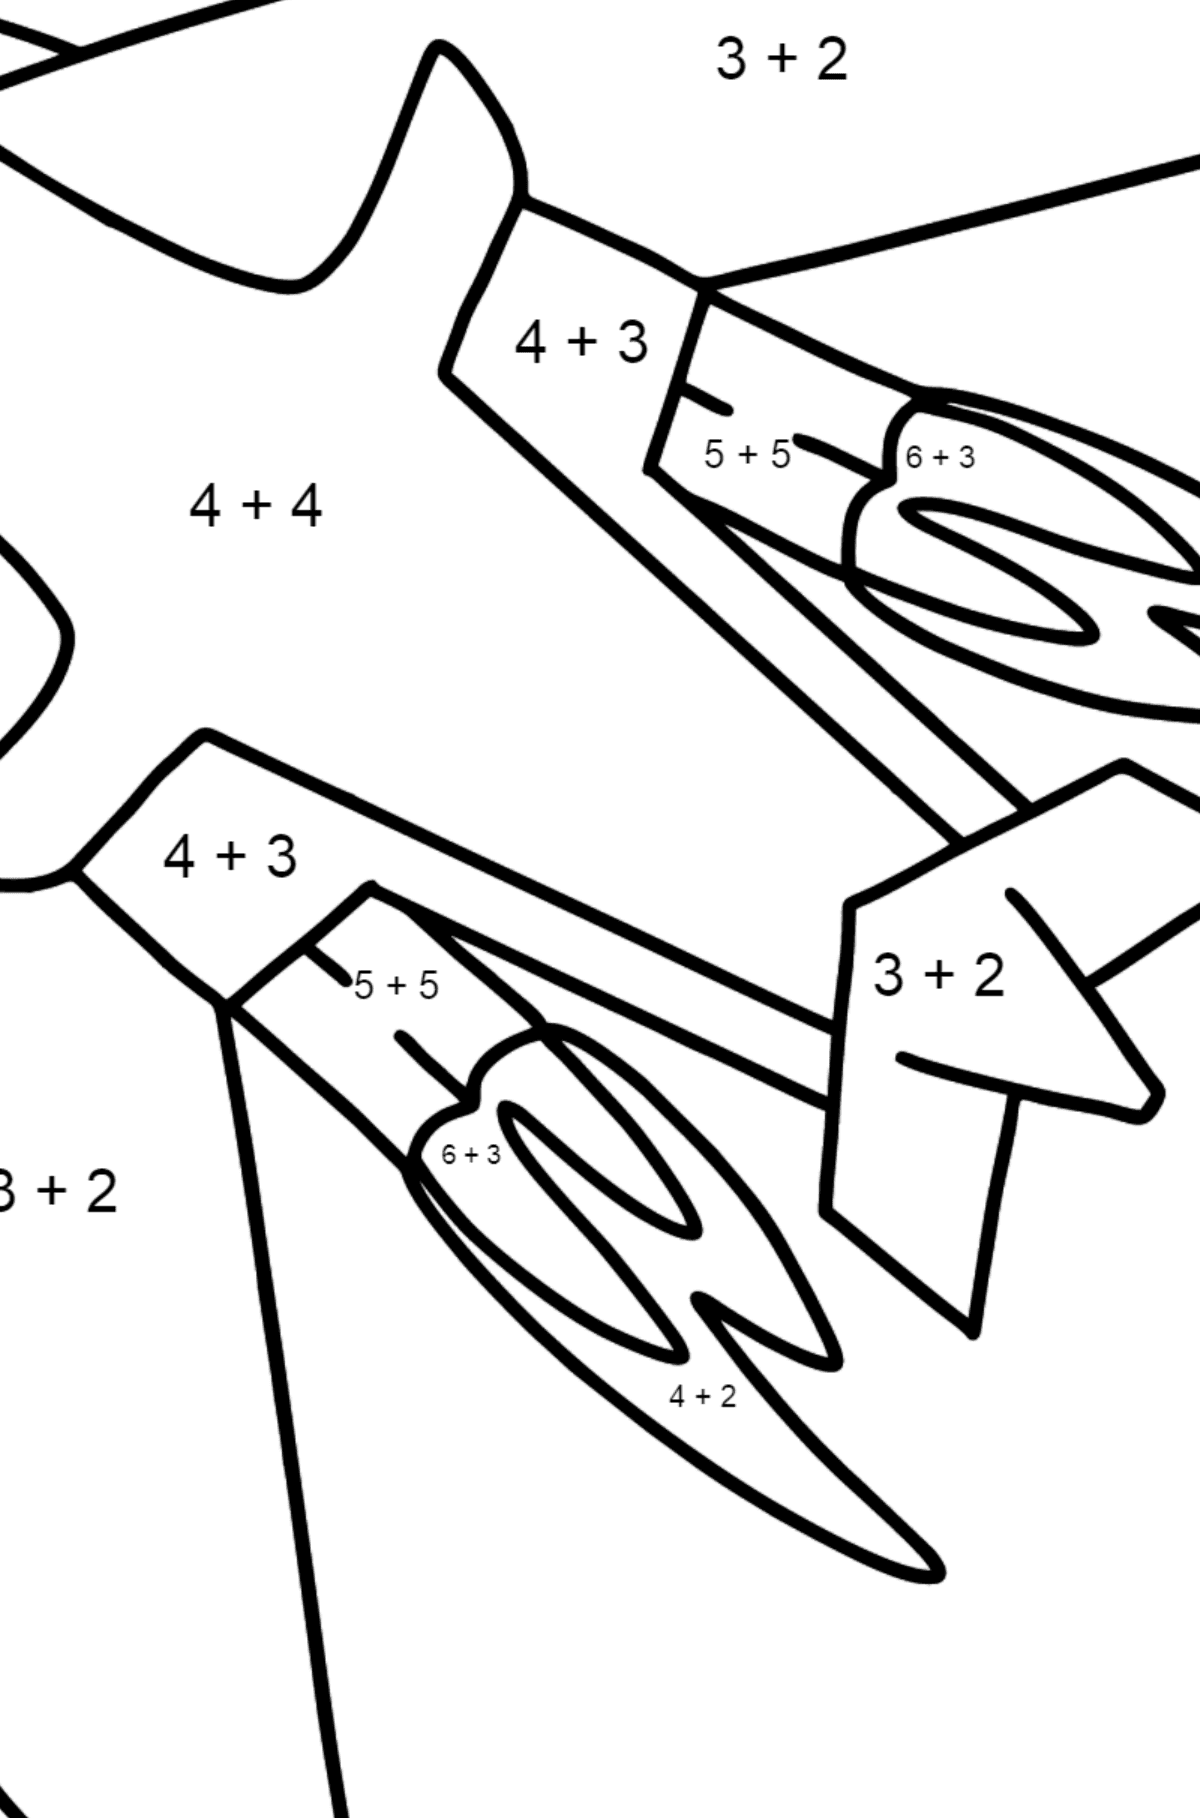 Airplane Tu-160 (White Swan) coloring page - Math Coloring - Addition for Kids